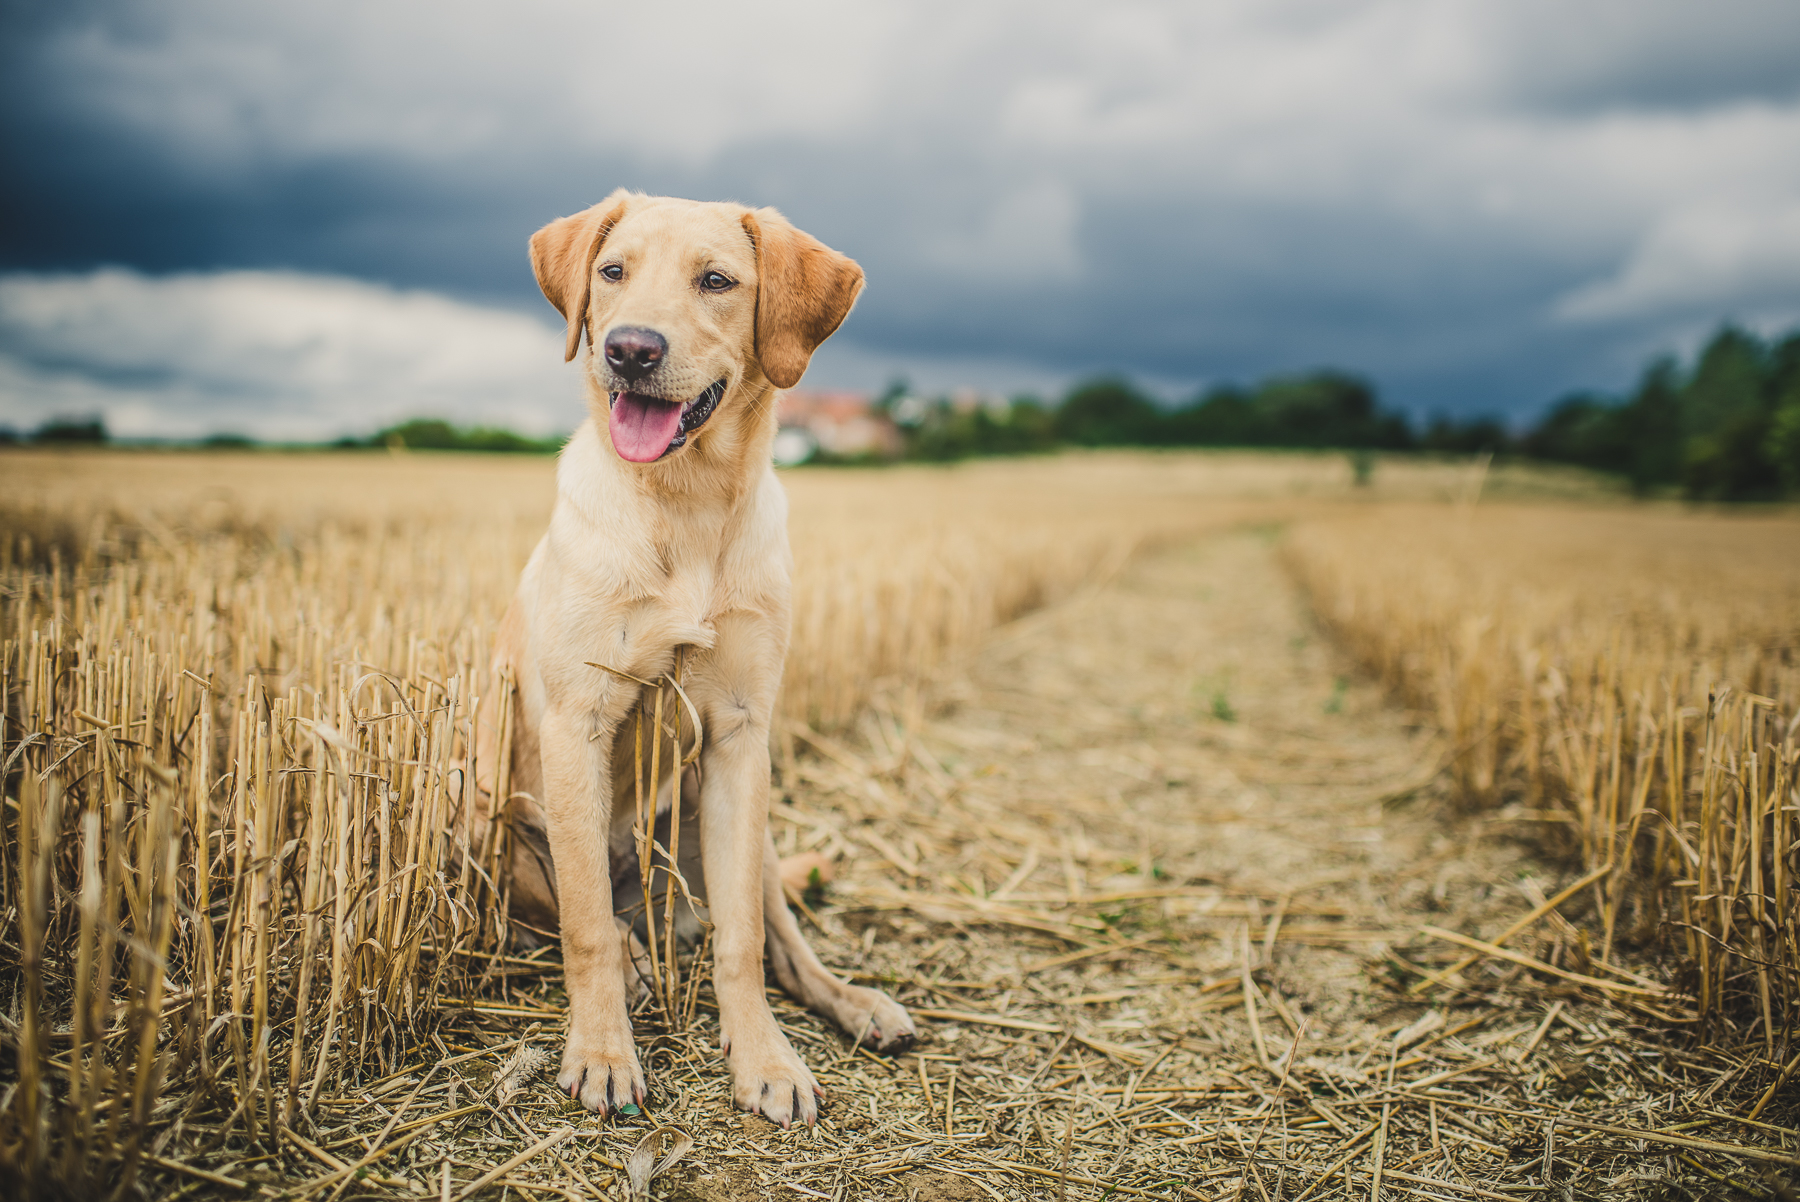 Dog sitting in old wheat field